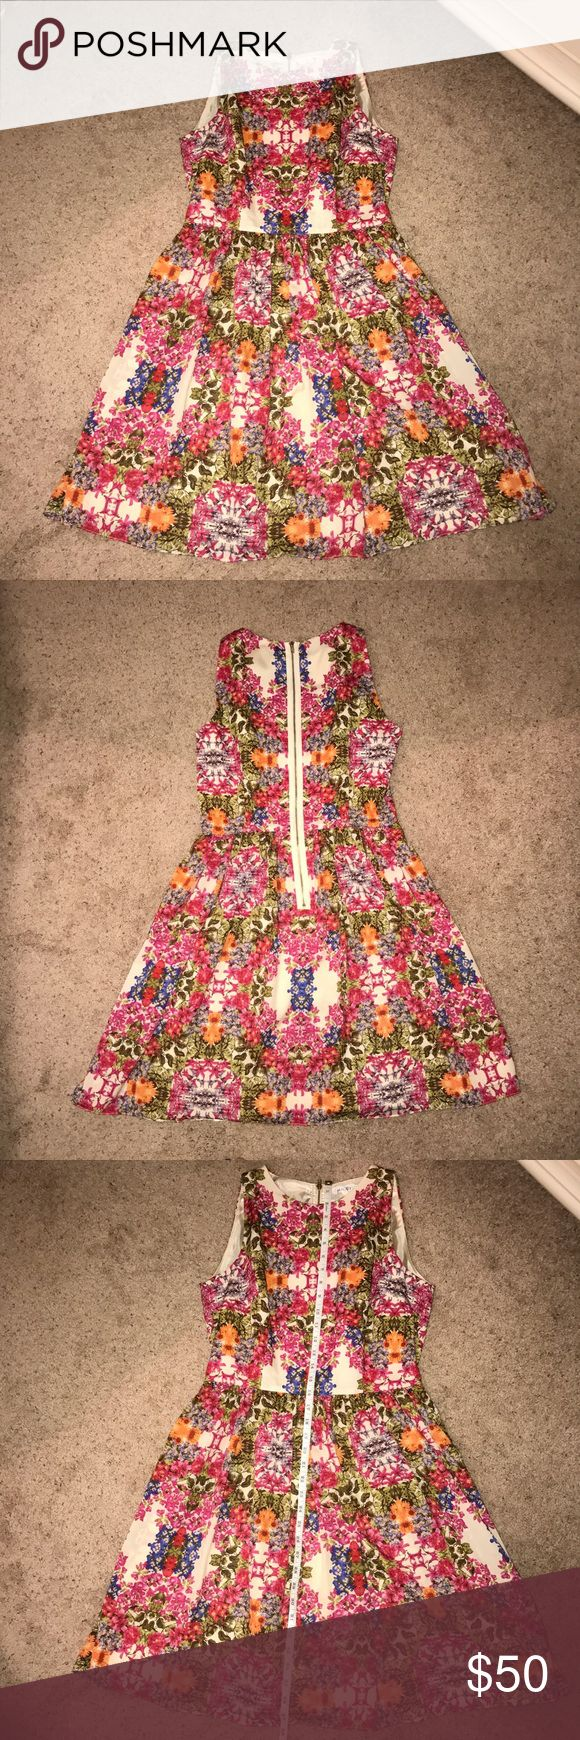 Maggs London Floral Dress Perfect dress for a summer wedding. Bold, gorgeous floral print, A-line cut, zipper back detail and high neckline make this the perfect dress! Worn 1 time and dry cleaned after- looks brand new! Unfortunately no longer fits. Open to offers! Maggy London Dresses